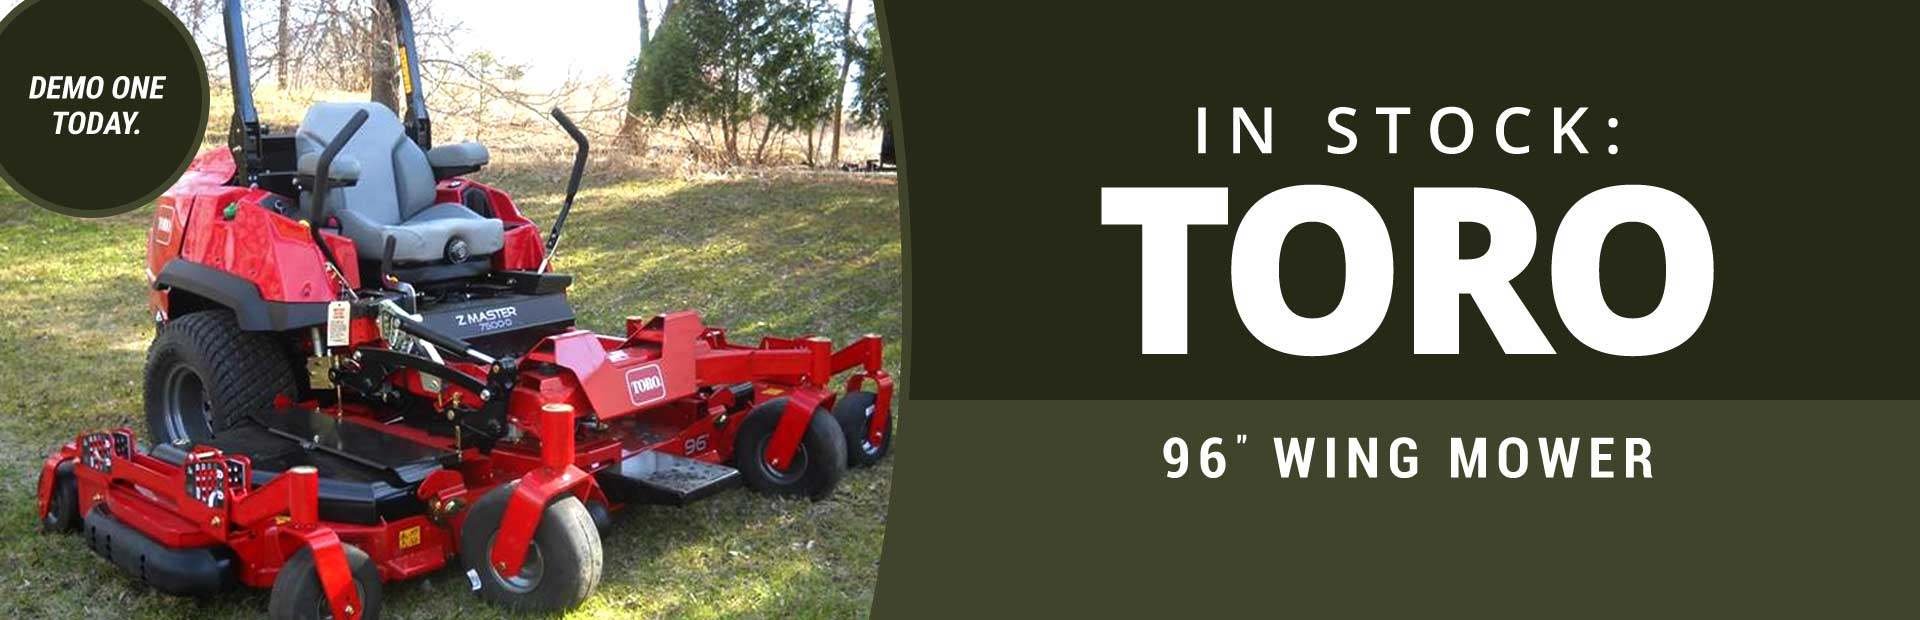 The Toro 96'' Wing Mower is in stock! Demo one today.